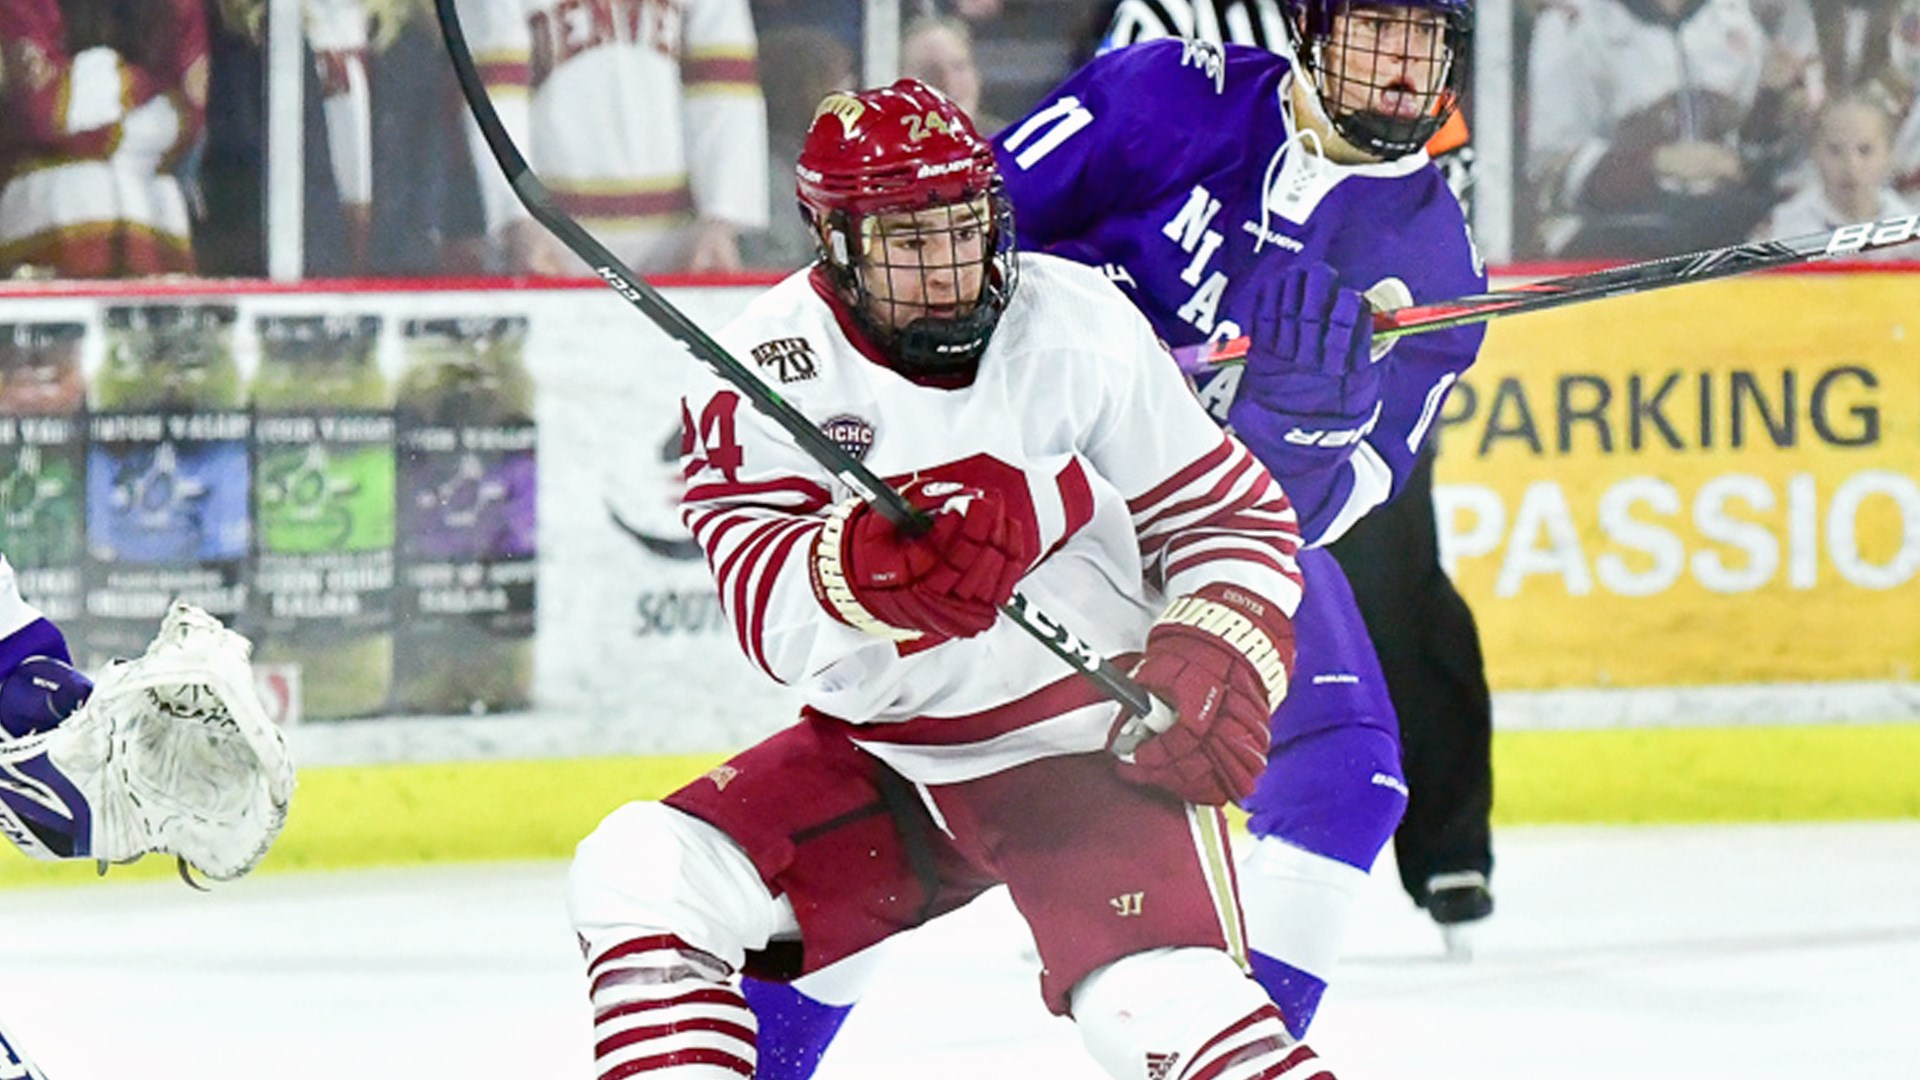 Brink Named to U.S. Preliminary Roster for World Junior Championship